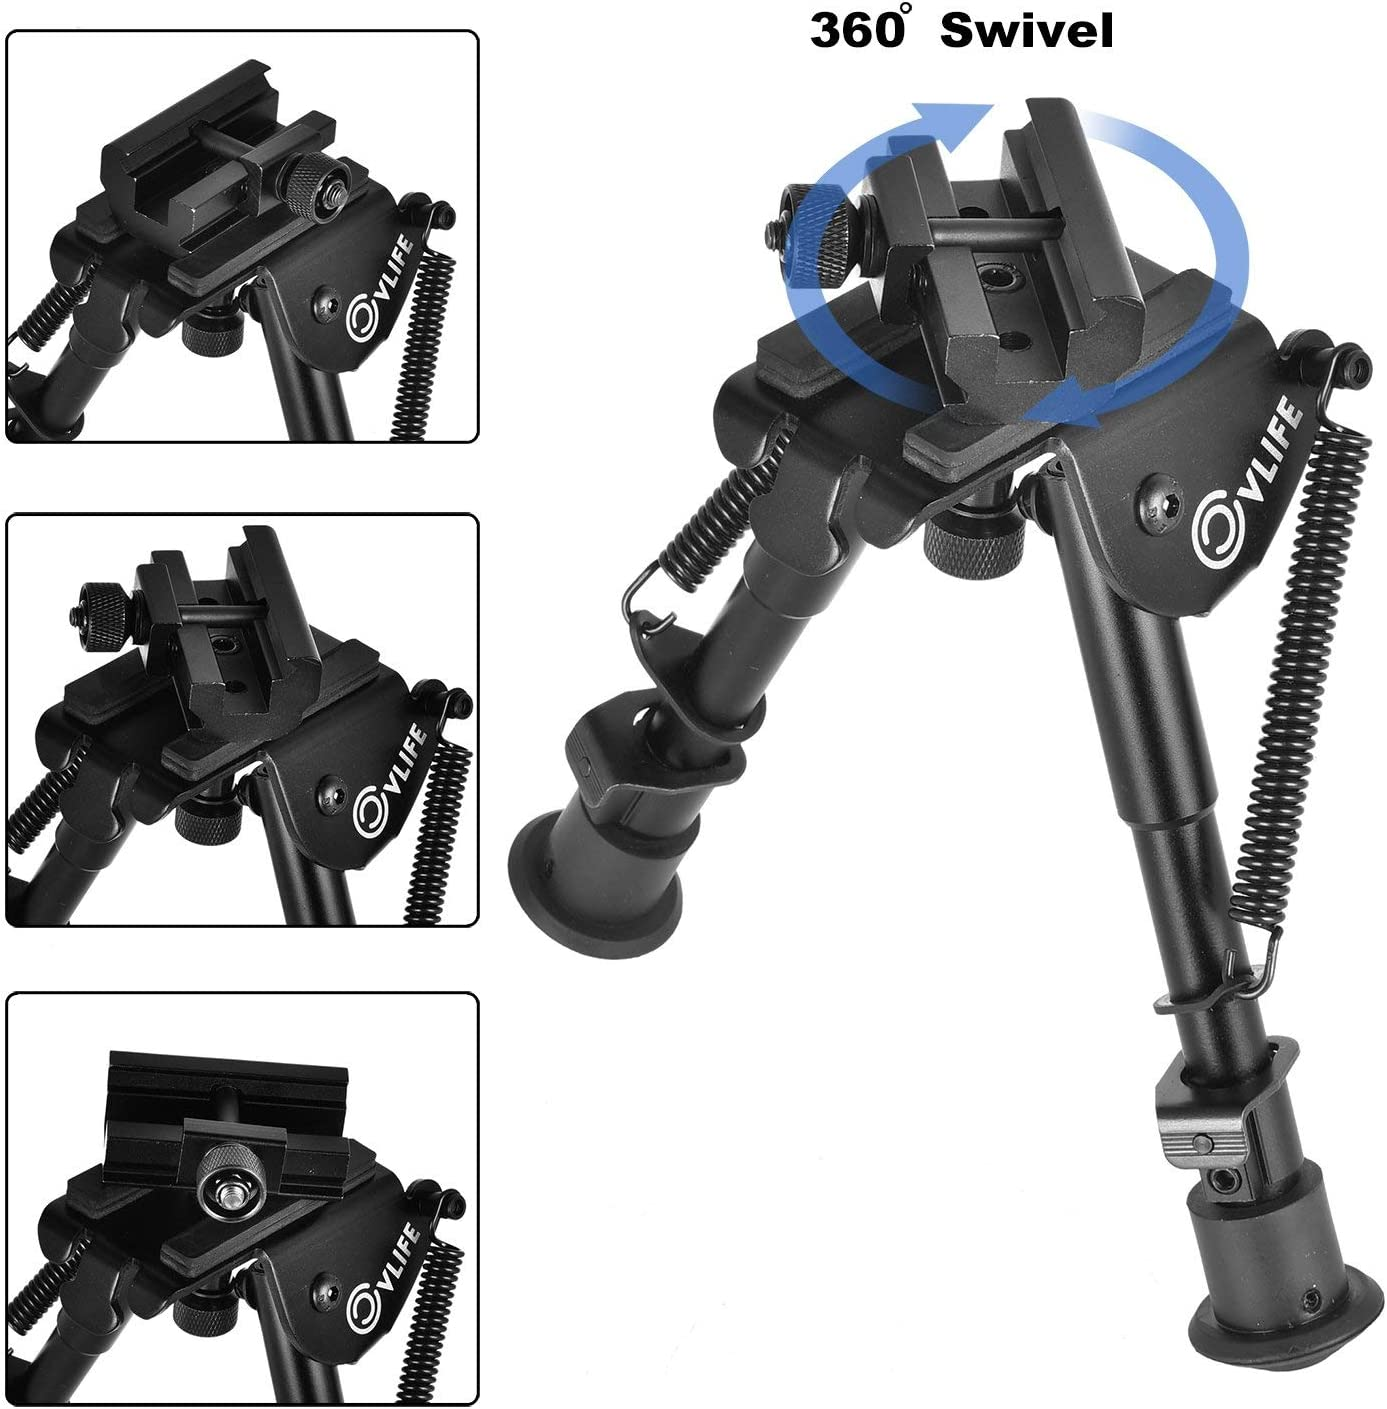 CVLIFE 6-9 Inches Tactical Bipod Adjustable Spring Return with 360 Degree Swivel Picatinny Adapter : Sports & Outdoors